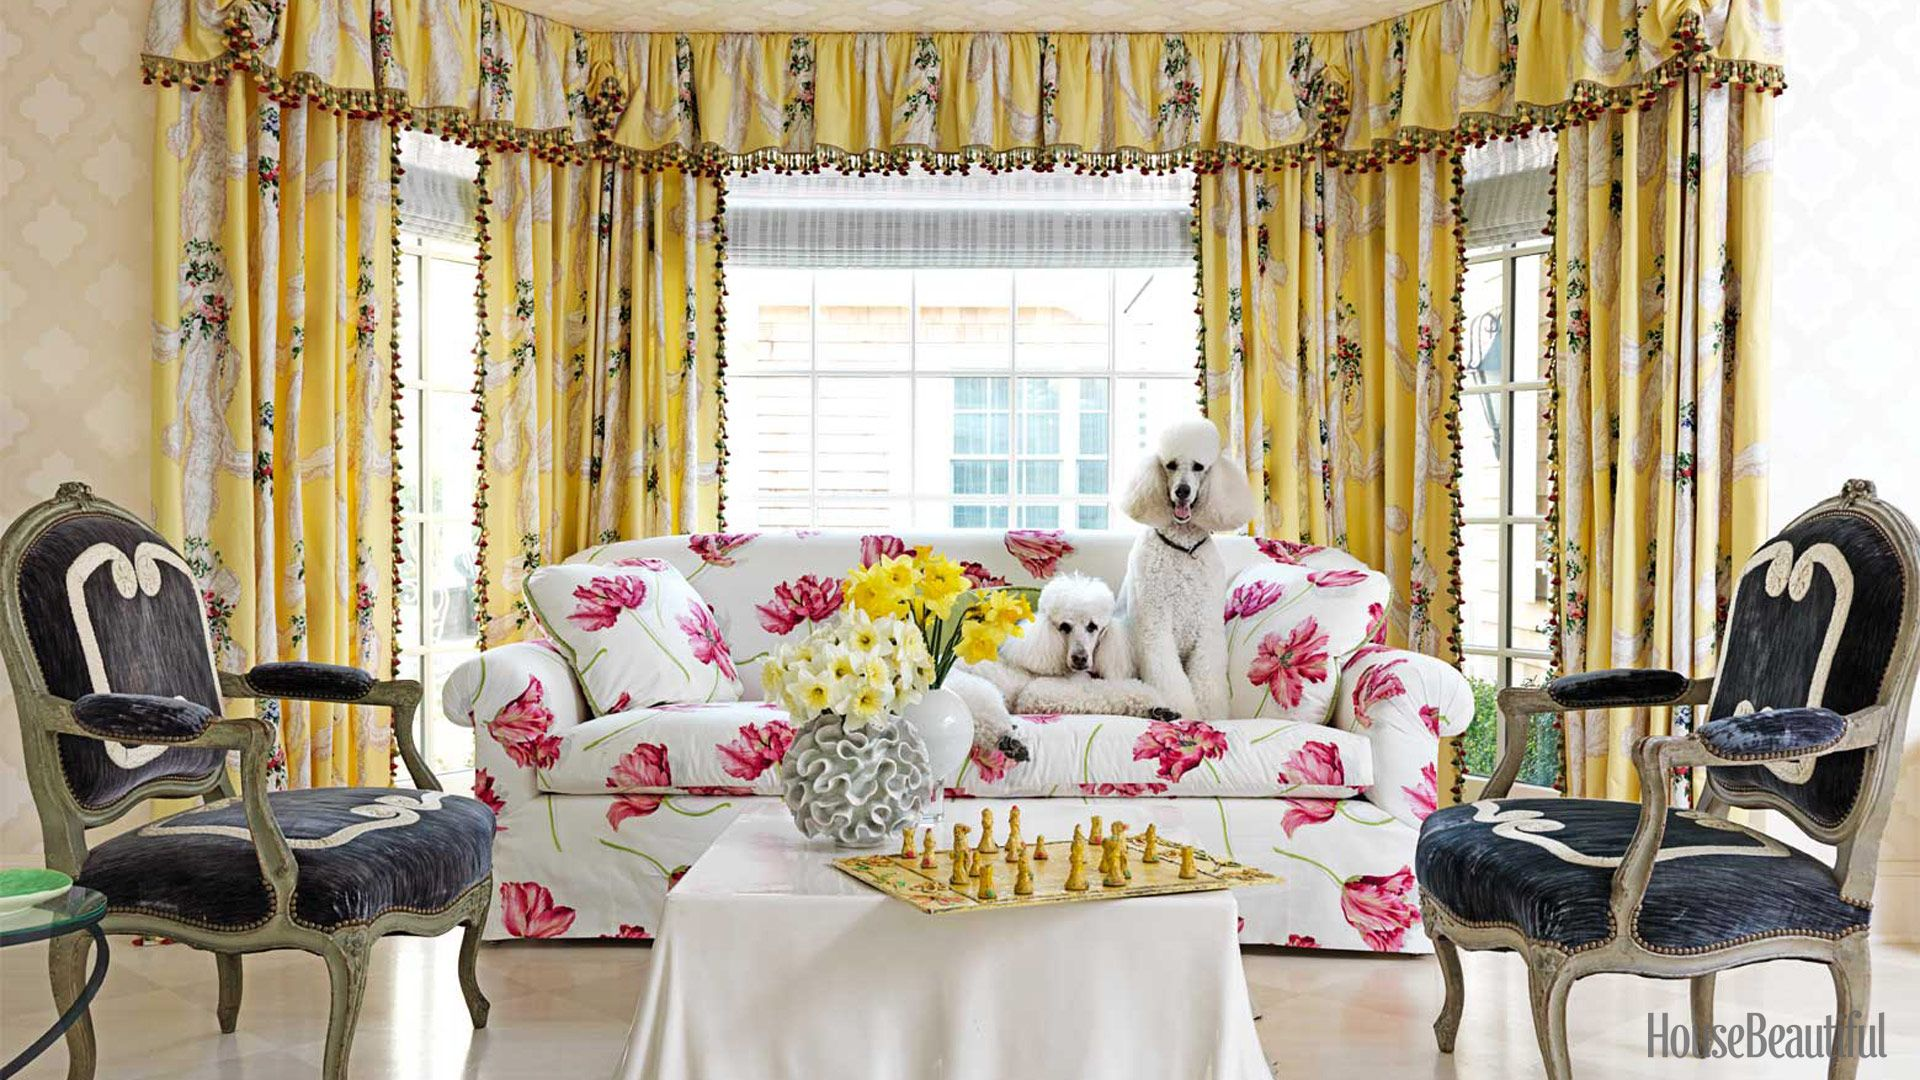 floral and lace patterned curtains